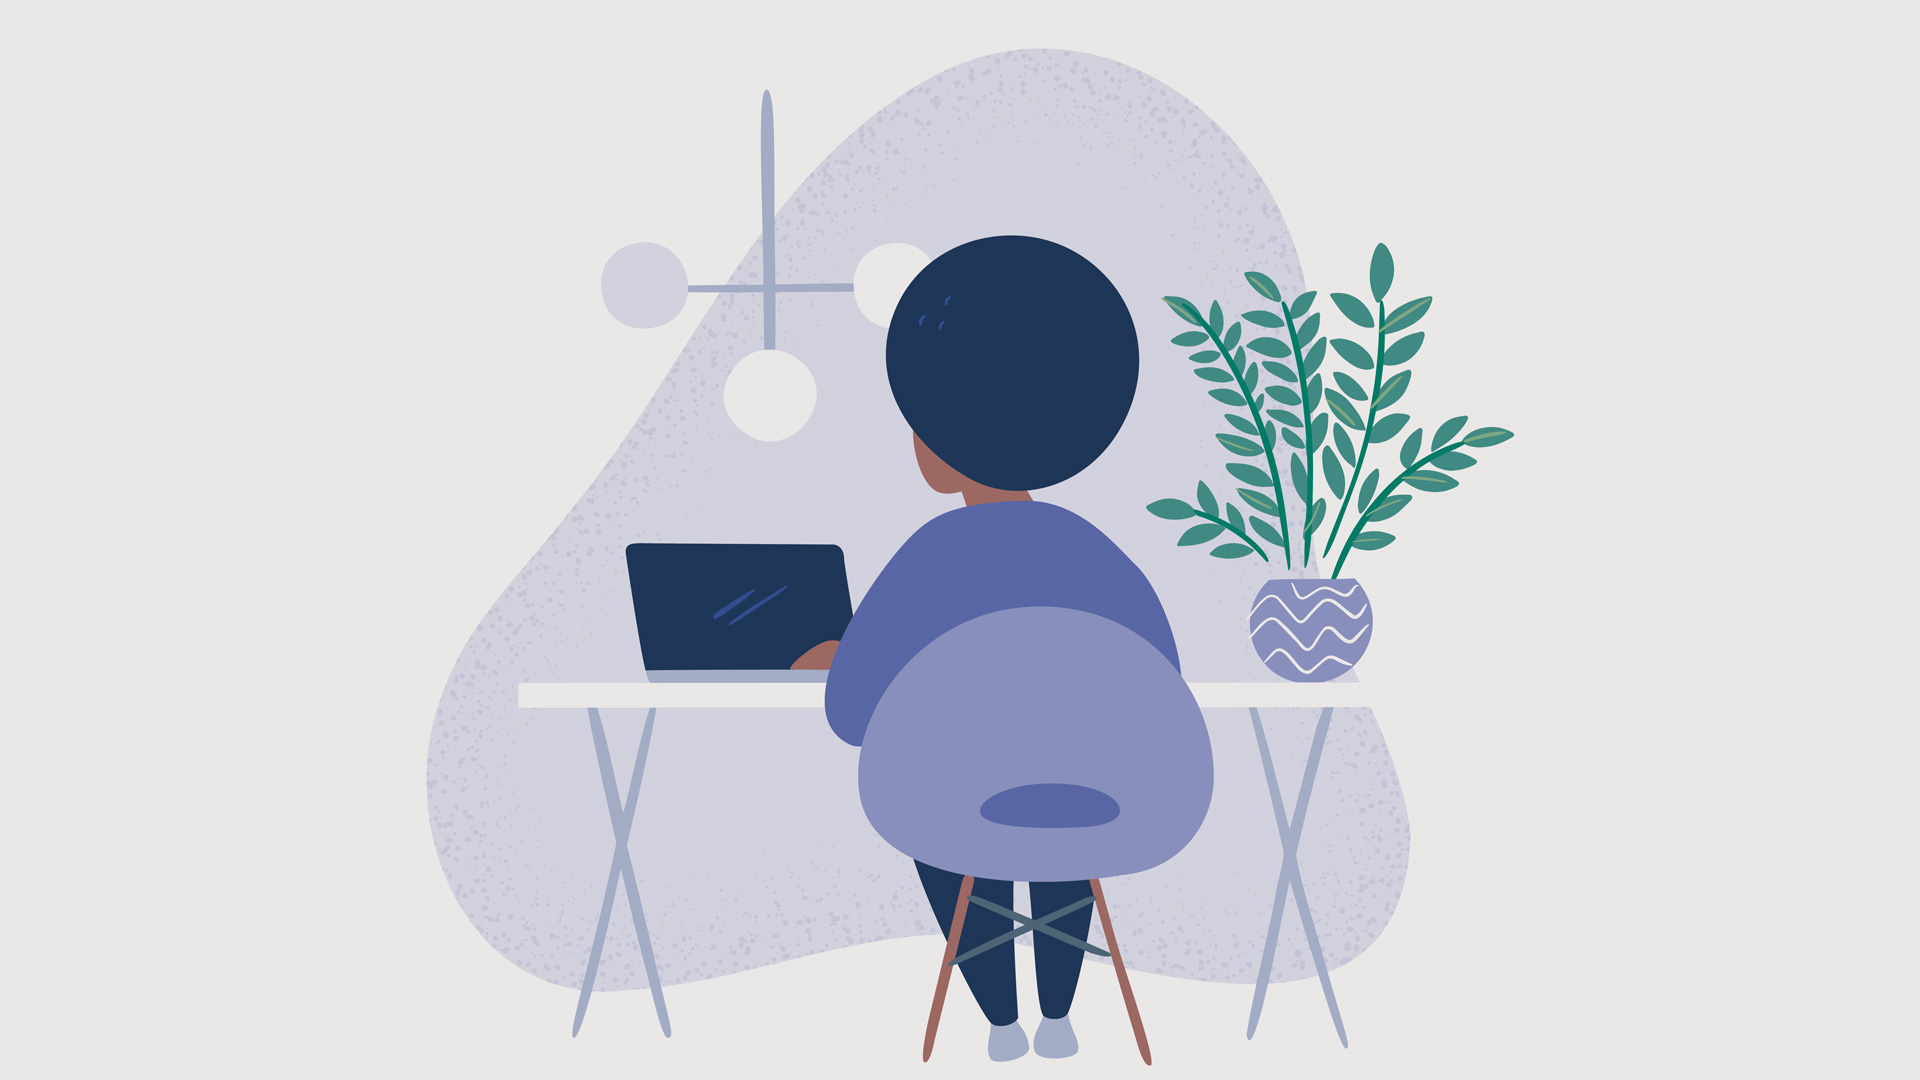 Person working at a desk with a plant next to them